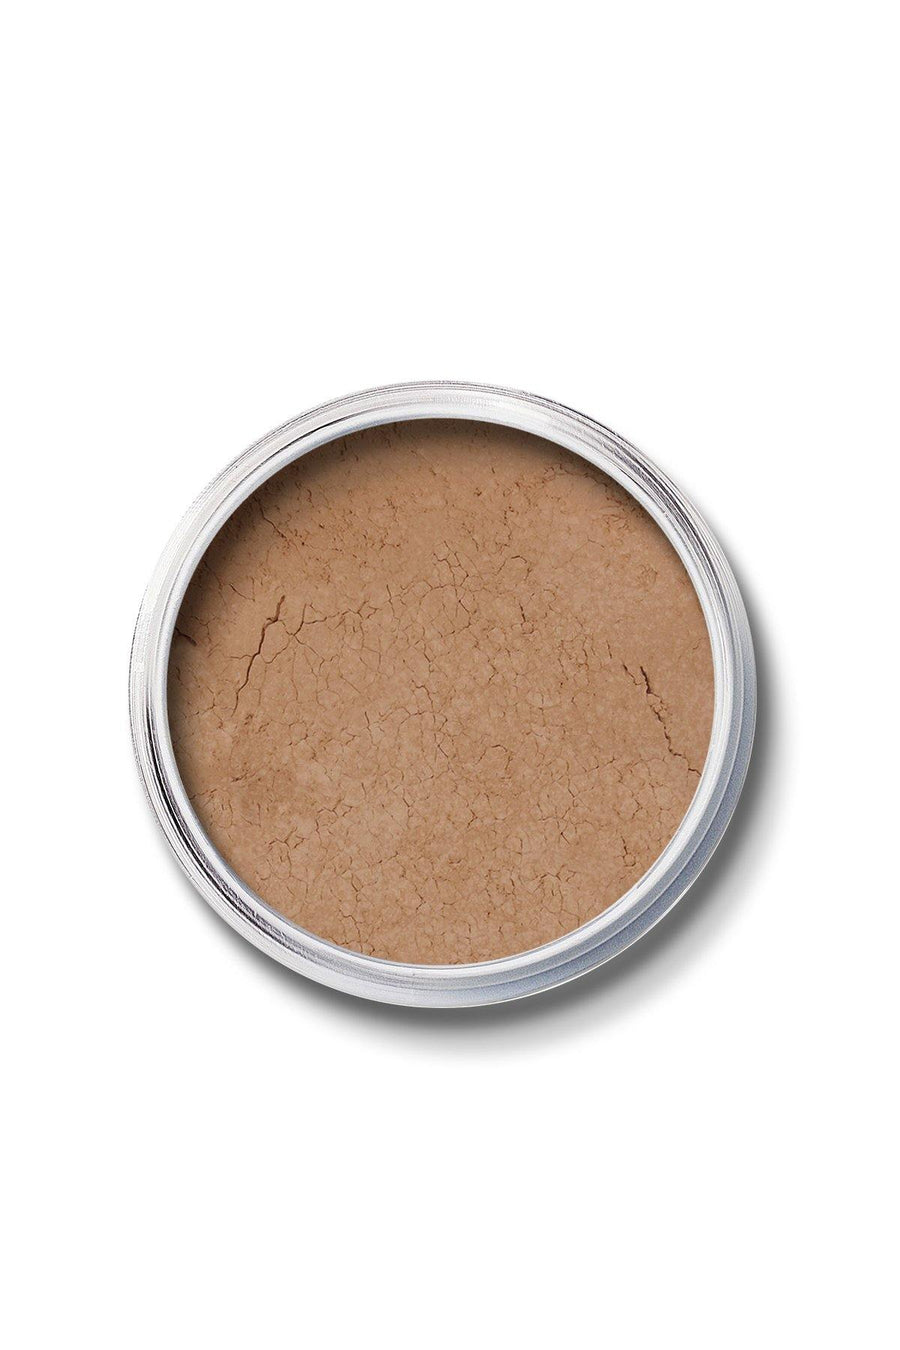 Mineral SPF 15 Foundation #7 - Dark Beige - Blend Mineral Cosmetics